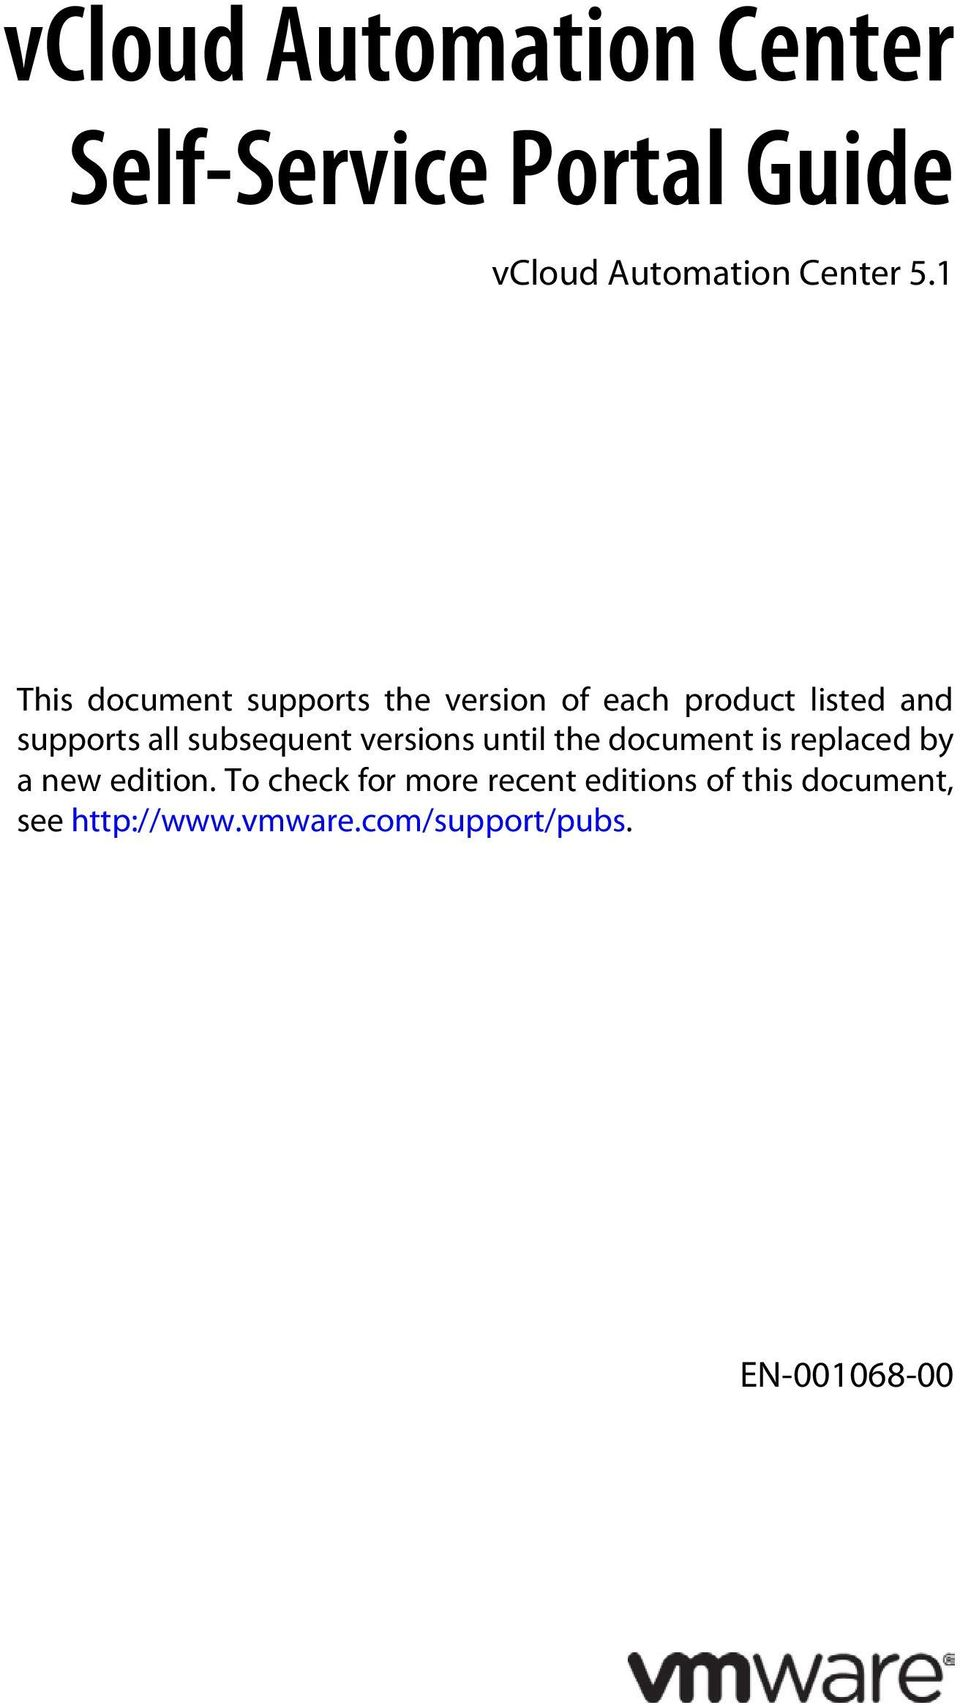 Fifth_Product_Name_and_Version_Number This document supports the version of each product listed and supports all